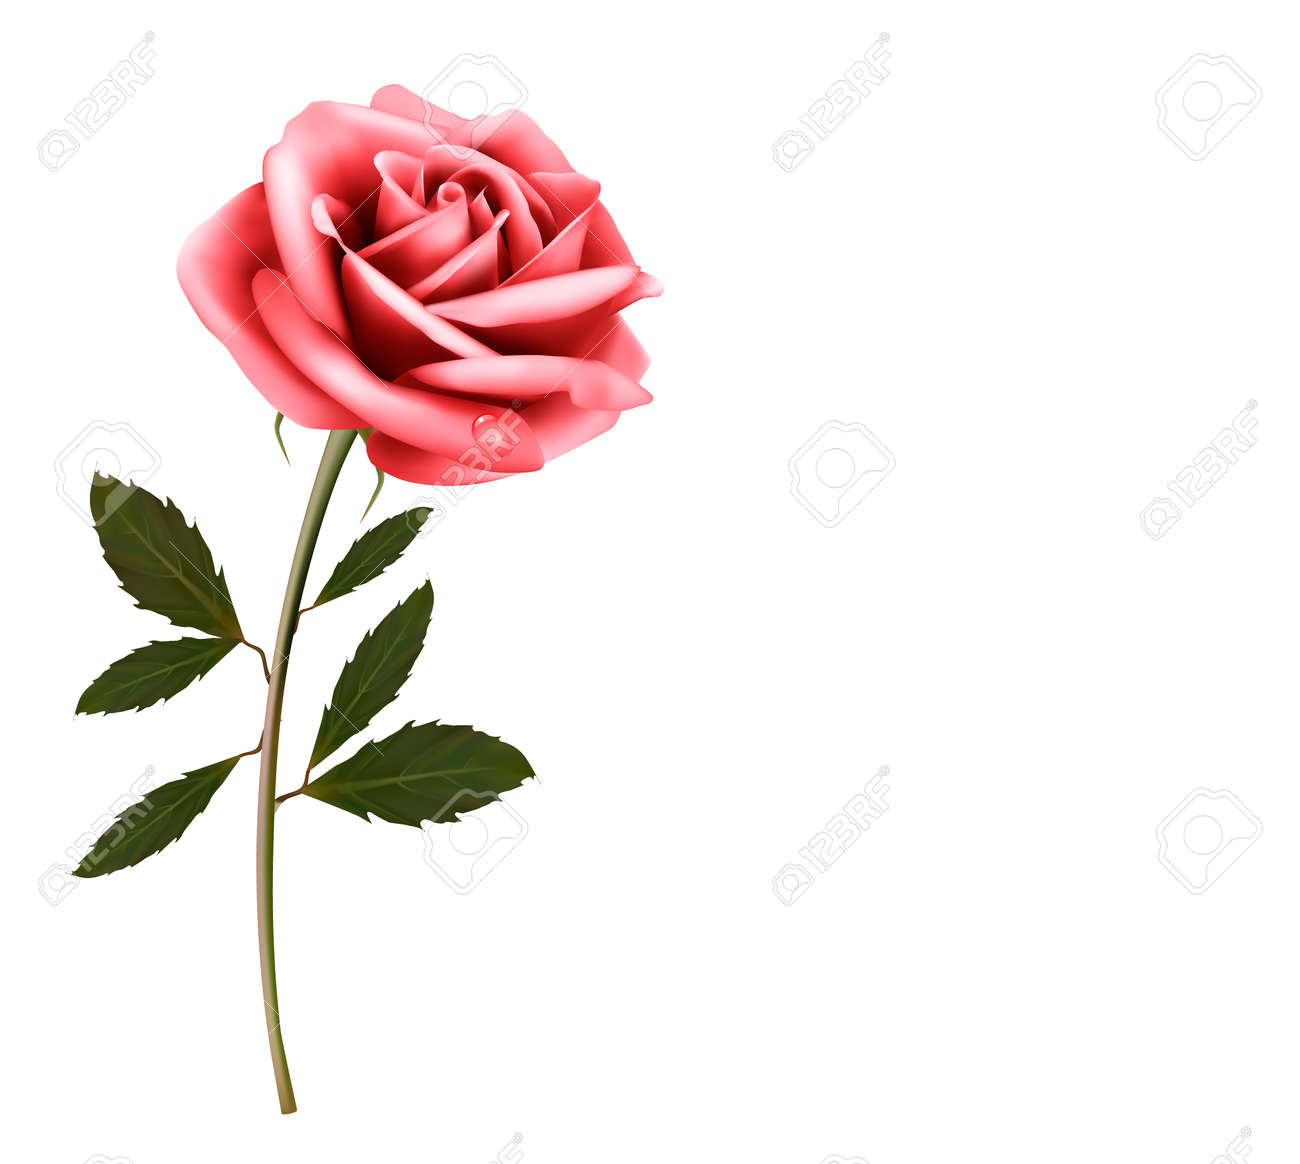 Flower Background With A Pink Rose Vector Royalty Free Cliparts